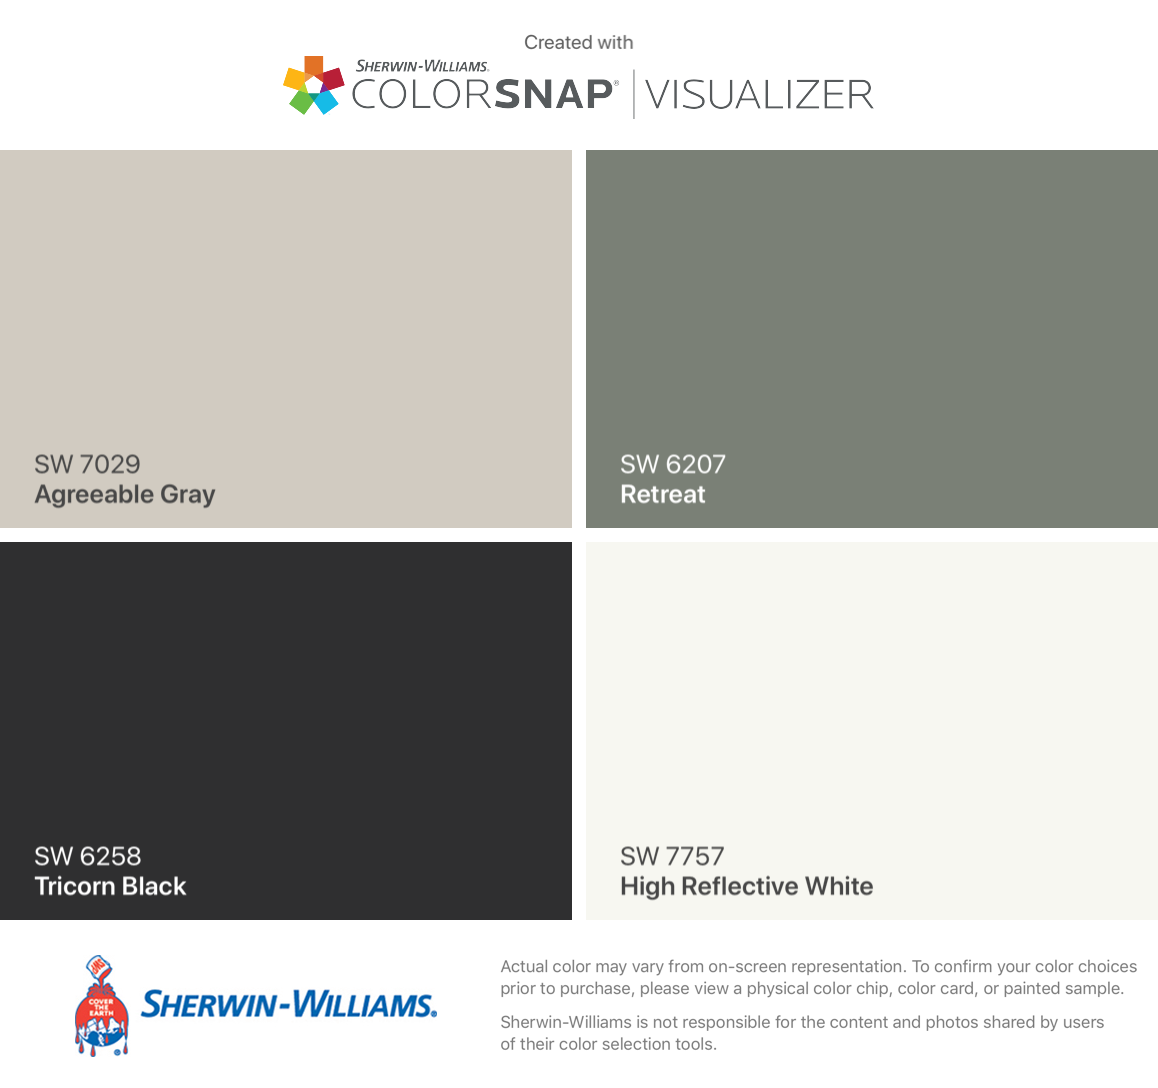 I found these colors with ColorSnap Visualizer for iPhone by Sherwin-Williams: Agreeable Gray (SW 7029), Tricorn Black (SW 6258), Retreat (SW 6207), High Reflective White (SW 7757).